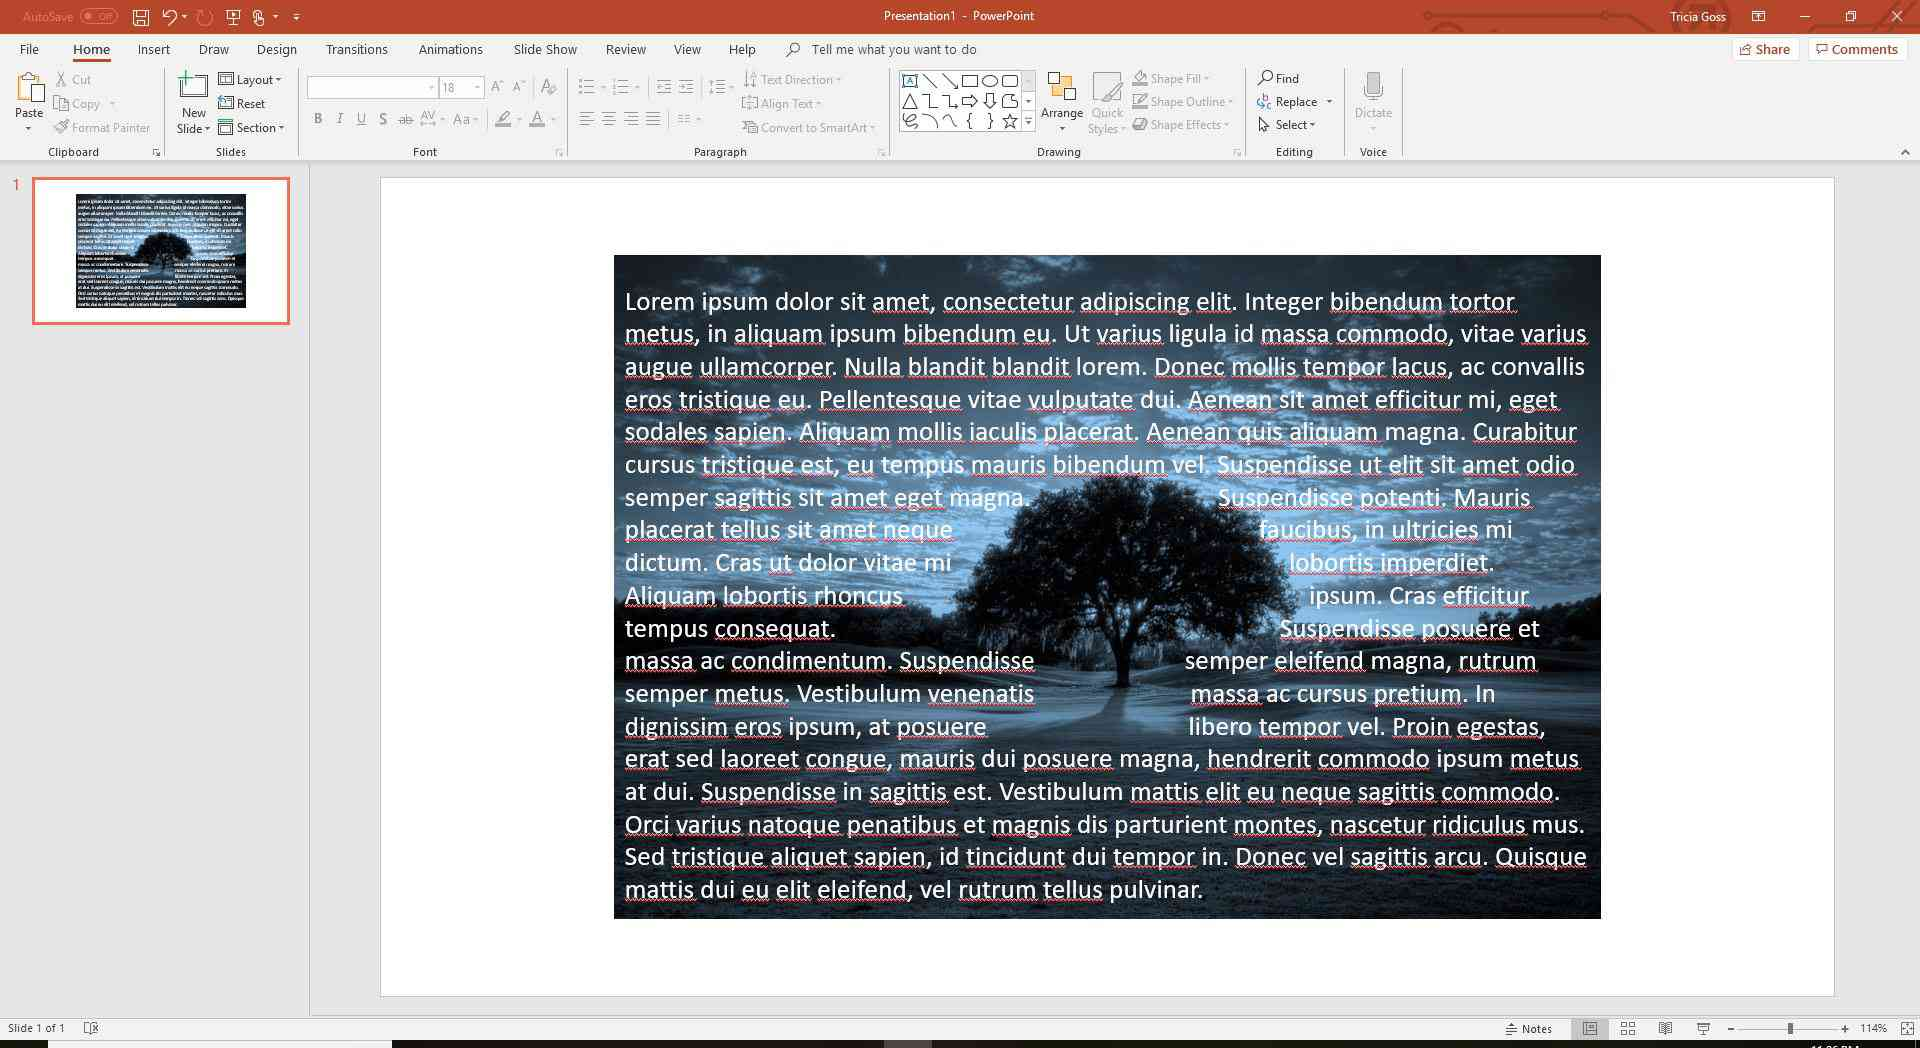 Use the space bar to wrap text in PowerPoint